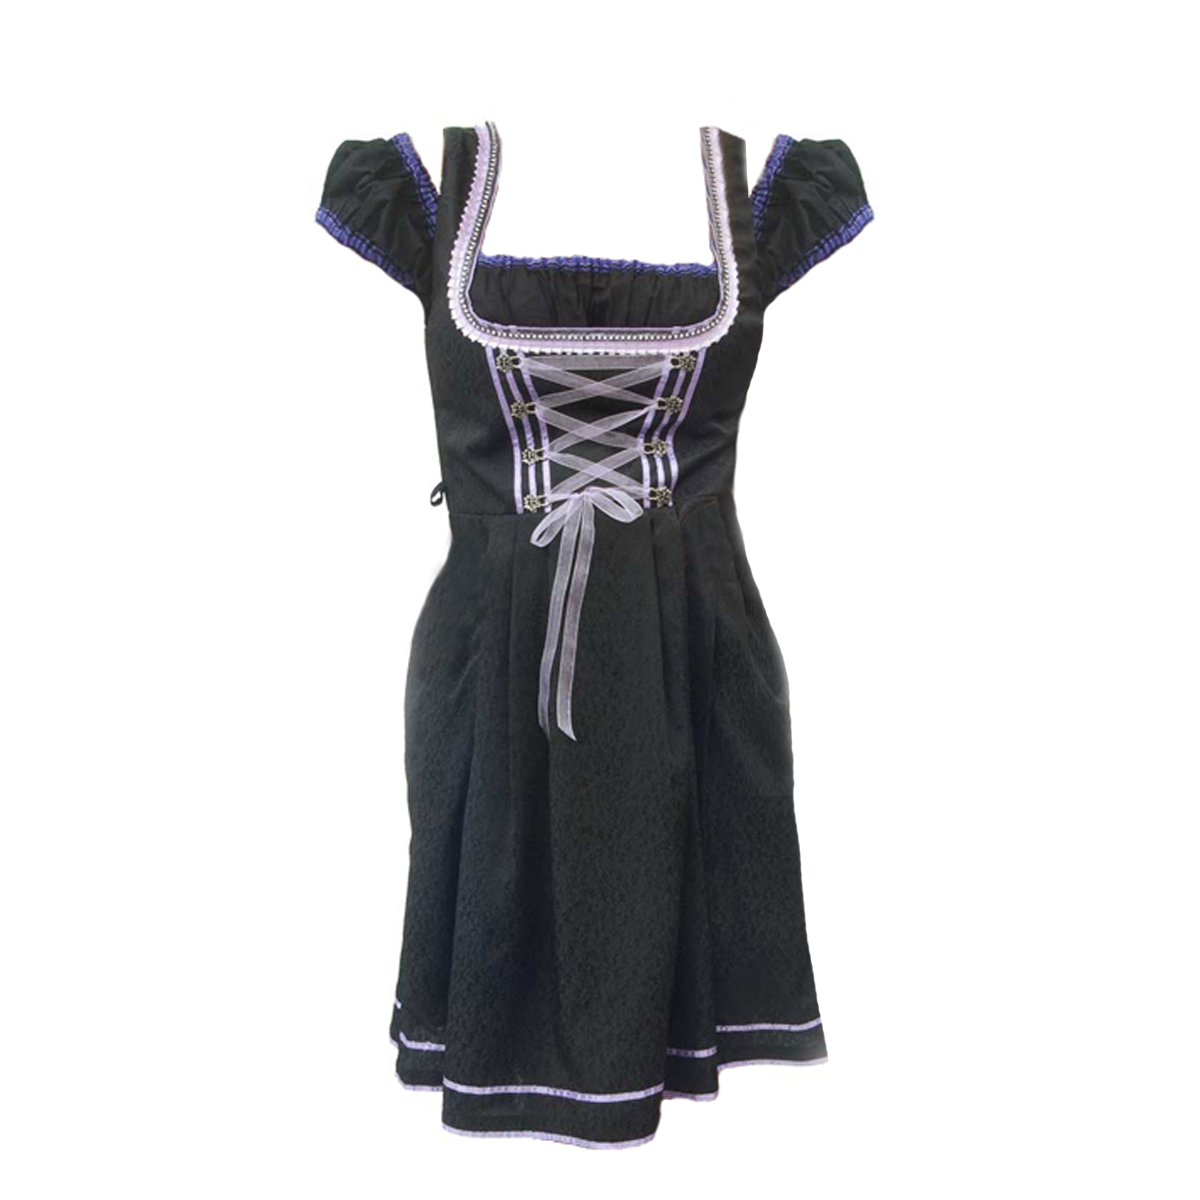 BLACK DIRNDL WITH PURPLE LACES